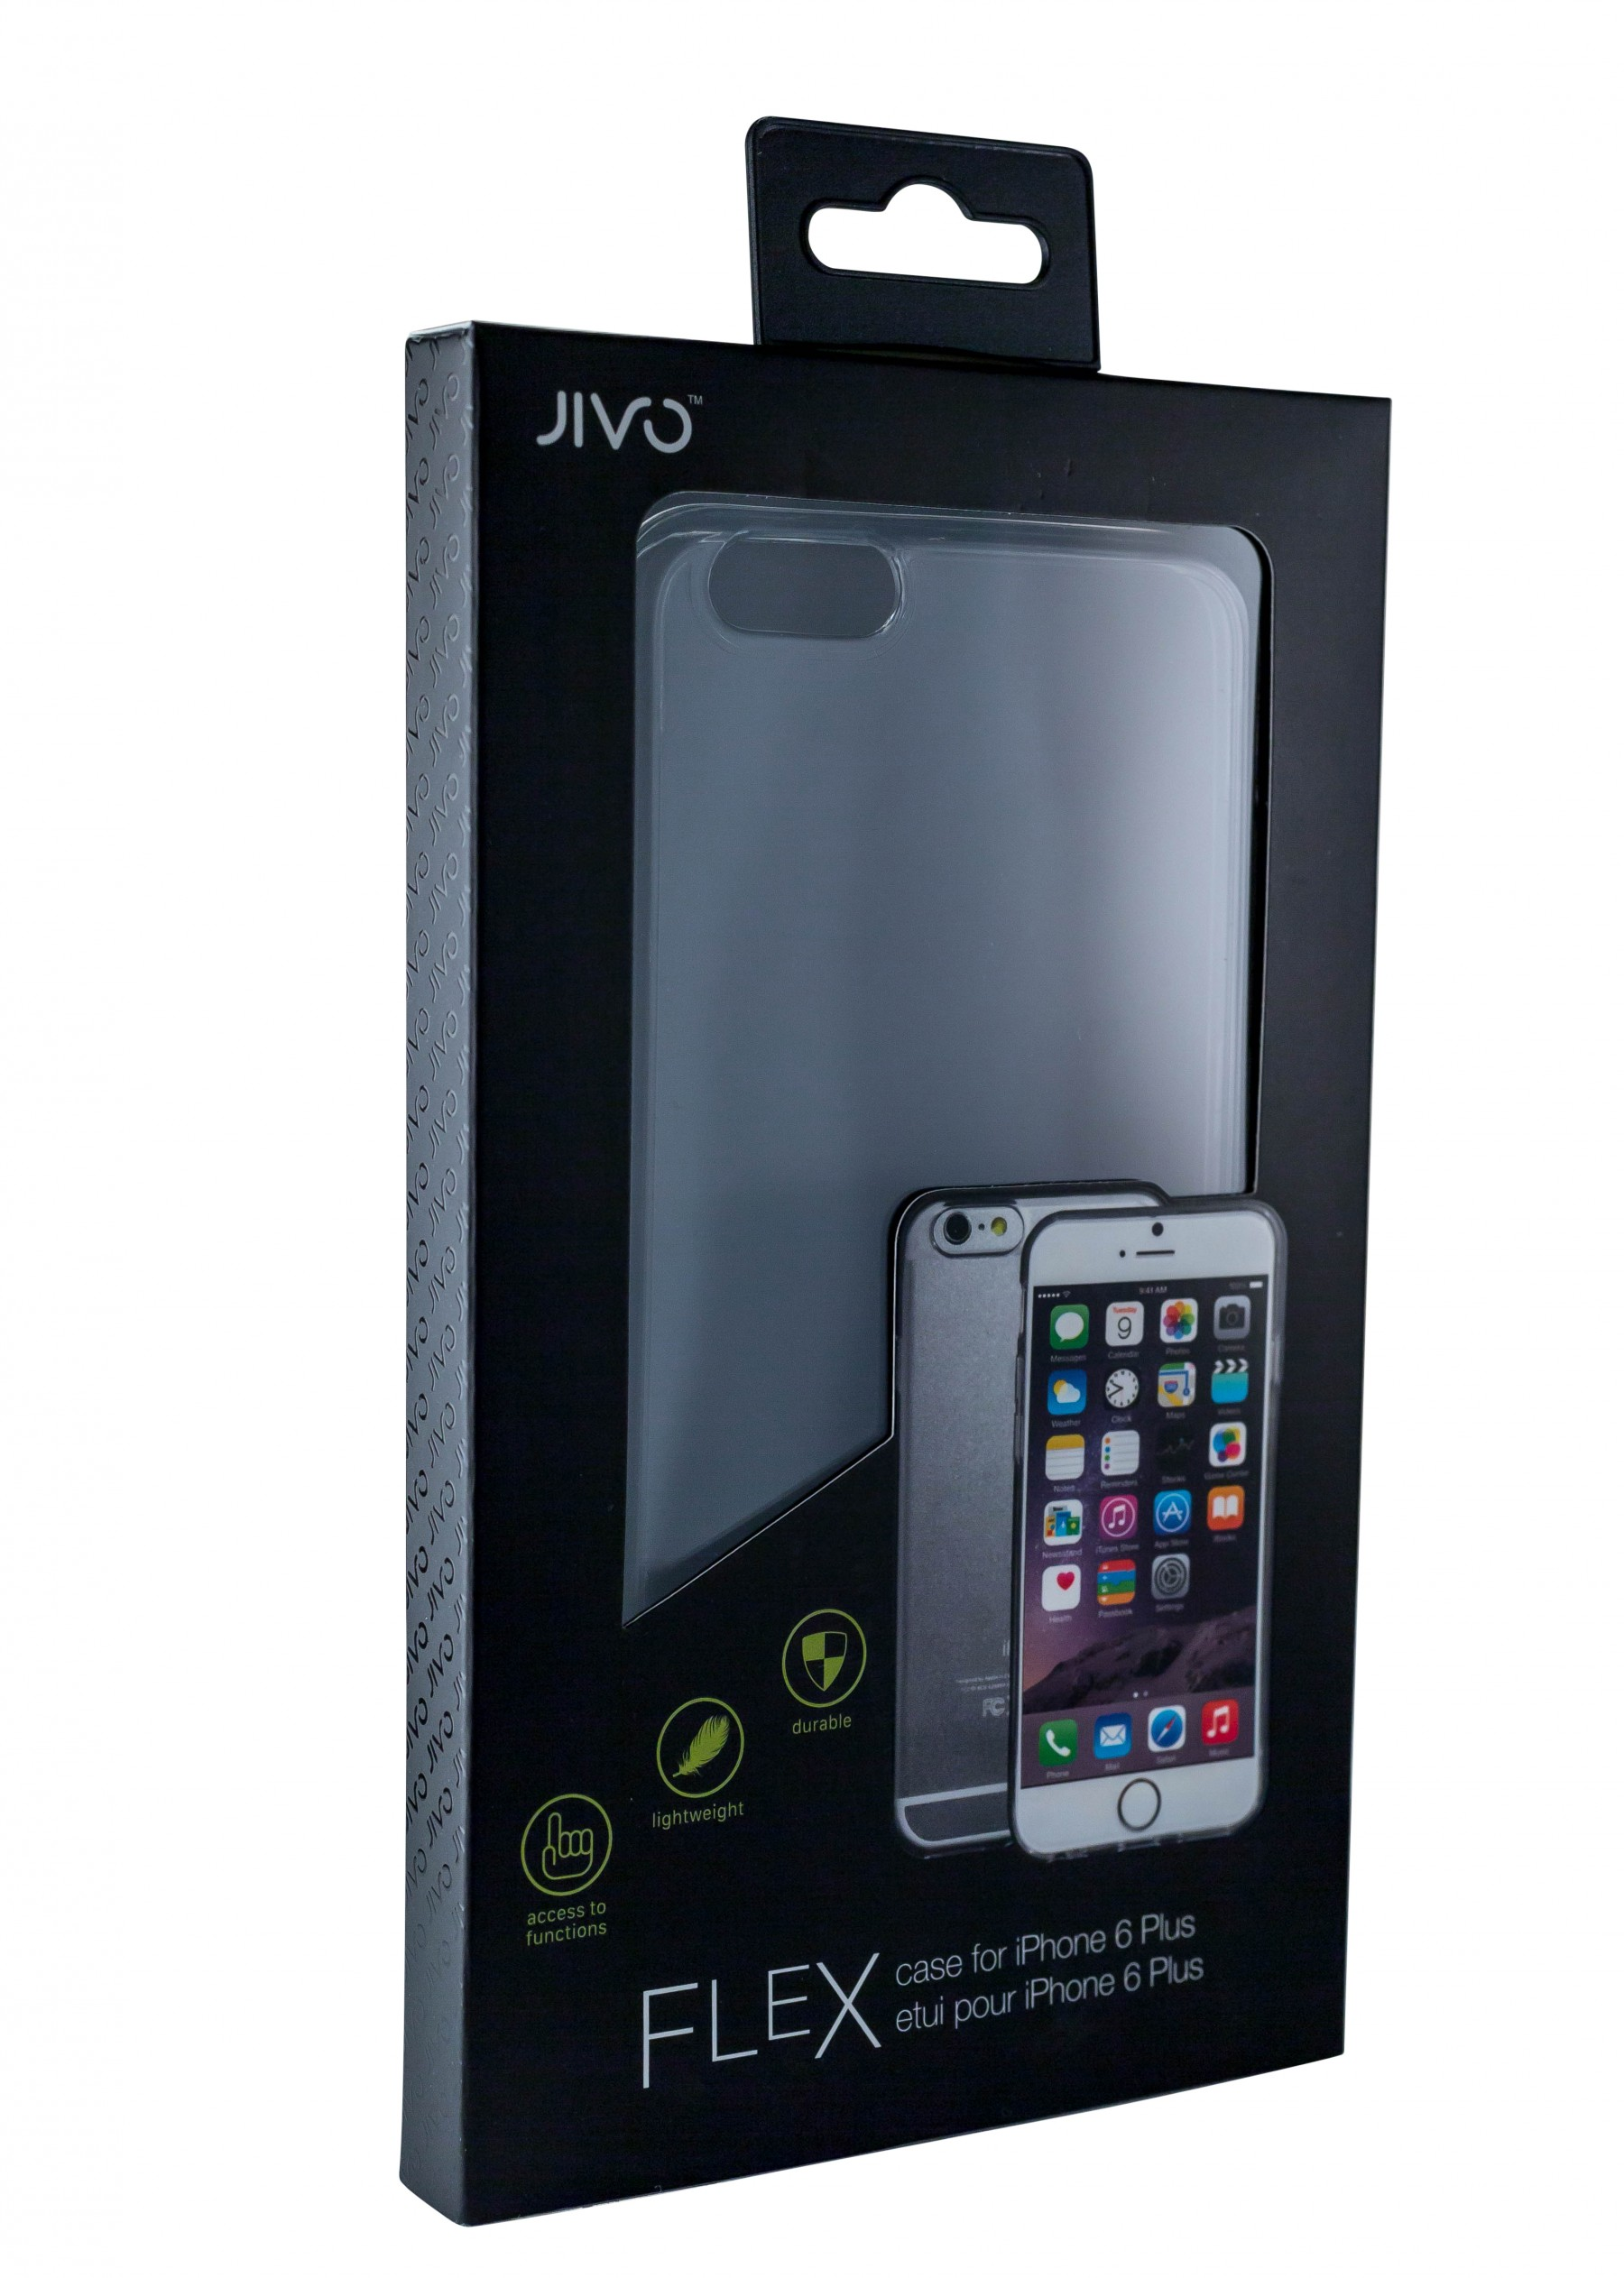 Jivo Flex Case for iPhone 6 Plus/6 Plus S - Products